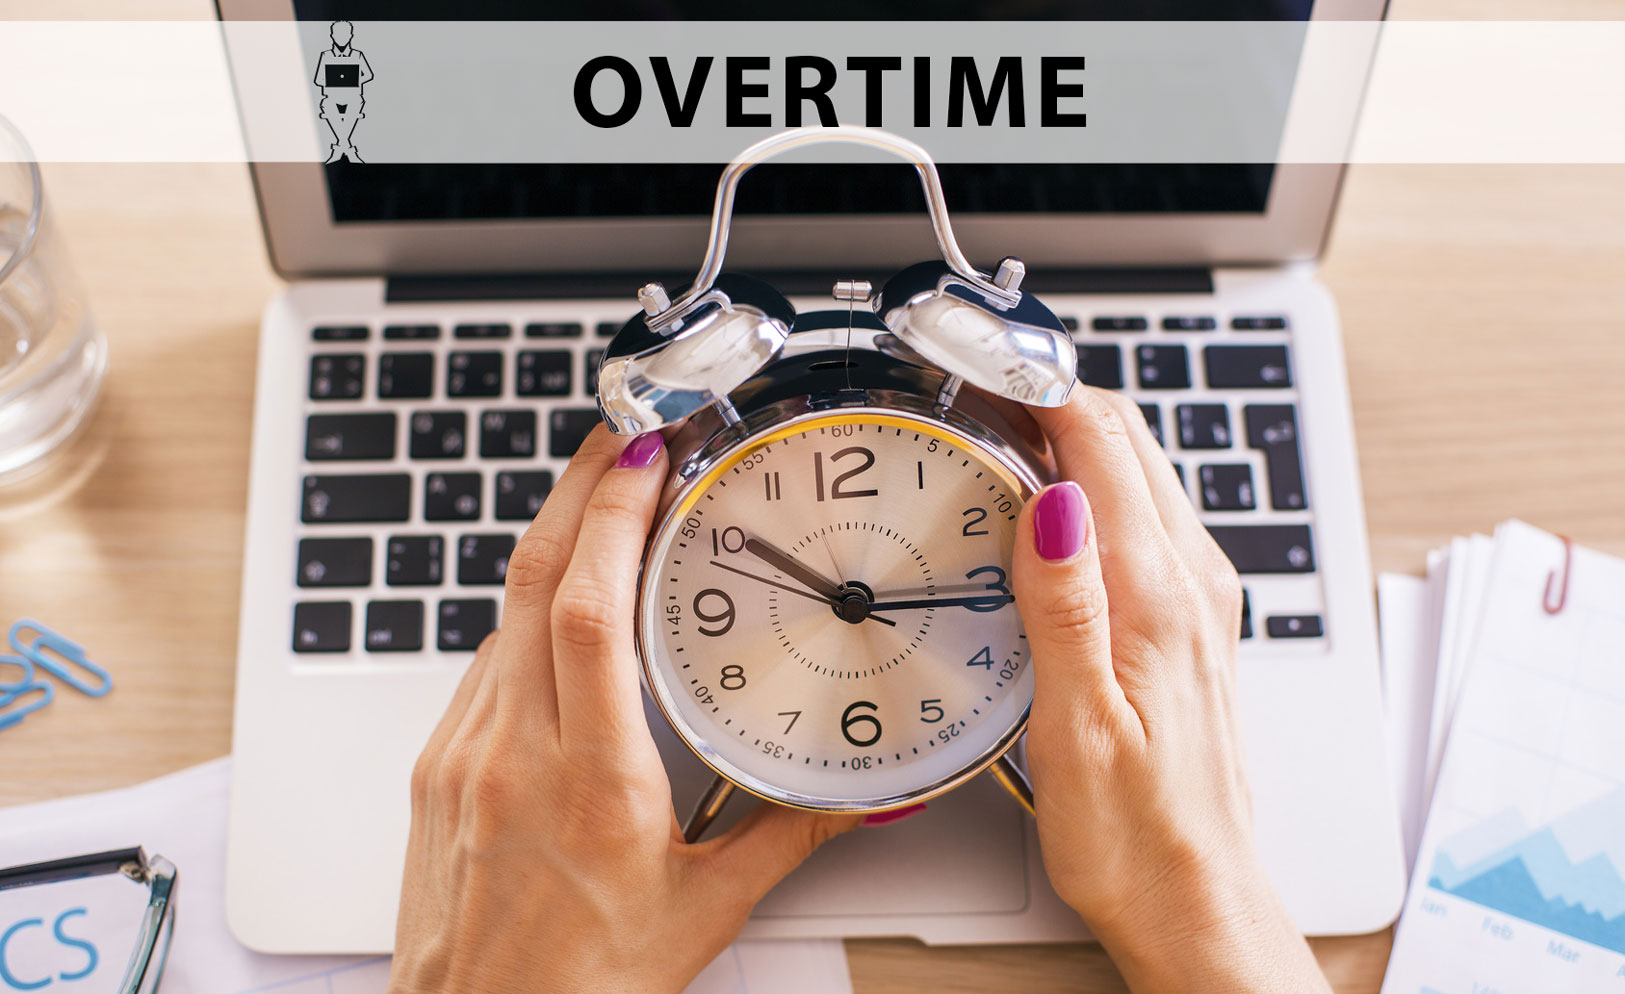 CONSENT TO WORK OVERTIME